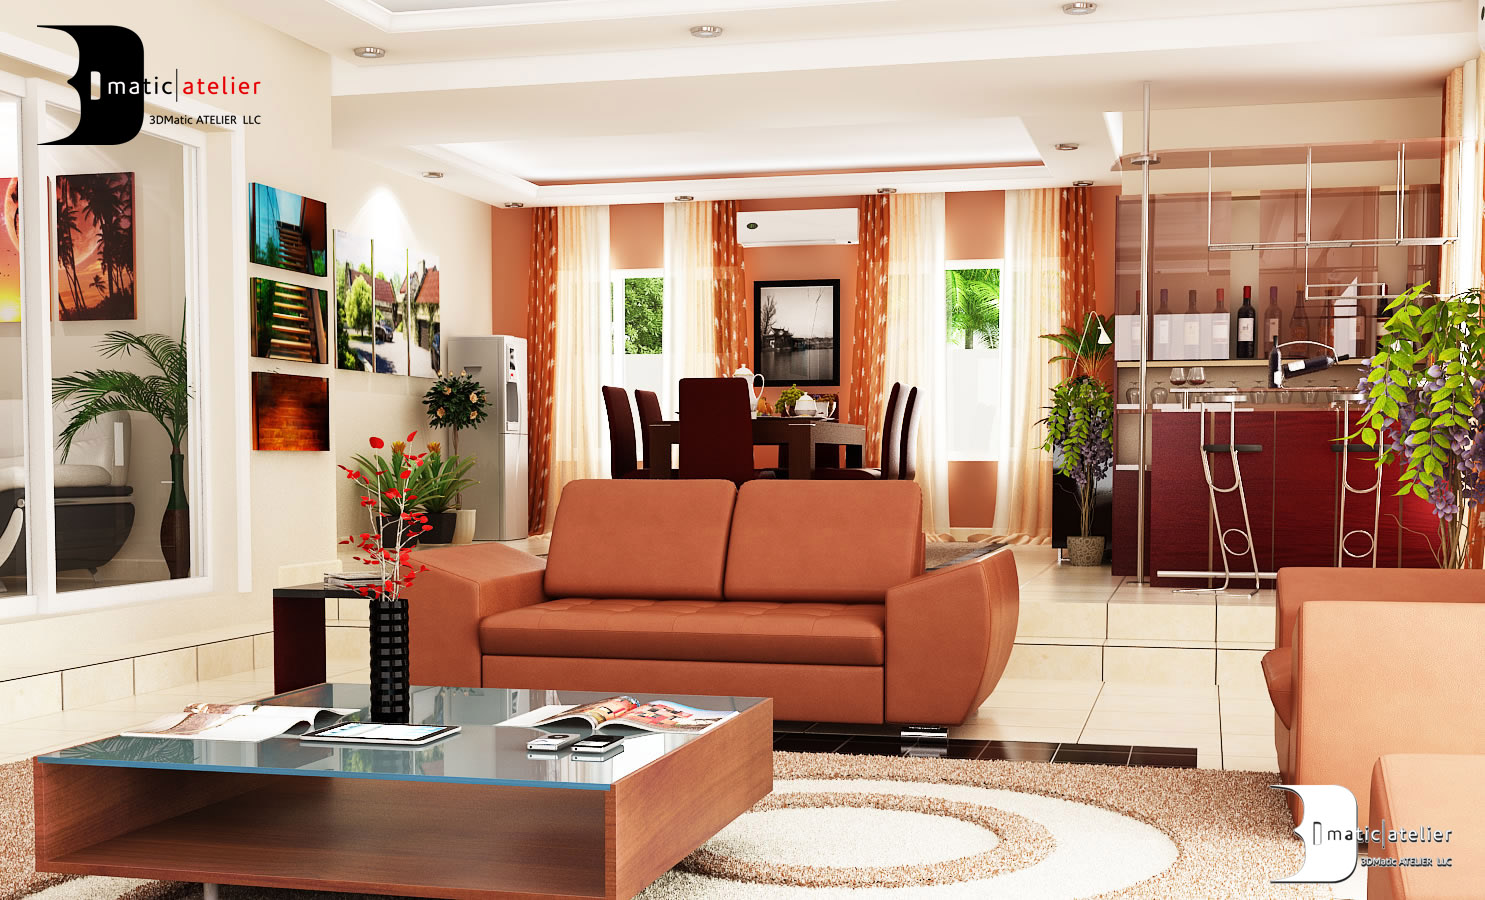 Interior design lekki nigeria by olamidun akinde at - House interior design ideas pictures ...